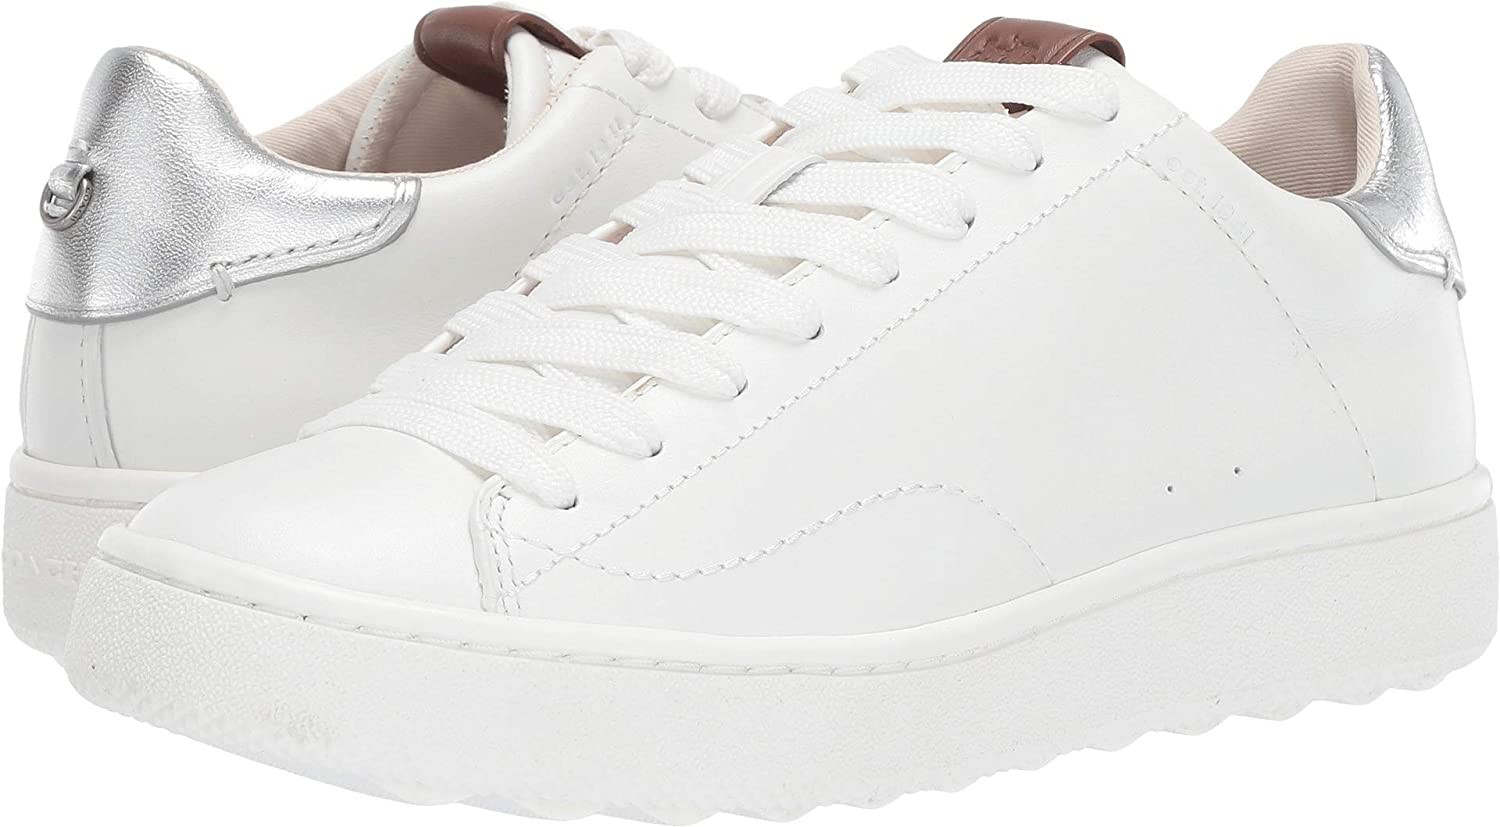 51baf3af39af1 Amazon.com | Coach Women's C101 Low Top Sneaker White/Silver Metallic  Leather 11 M US | Fashion Sneakers